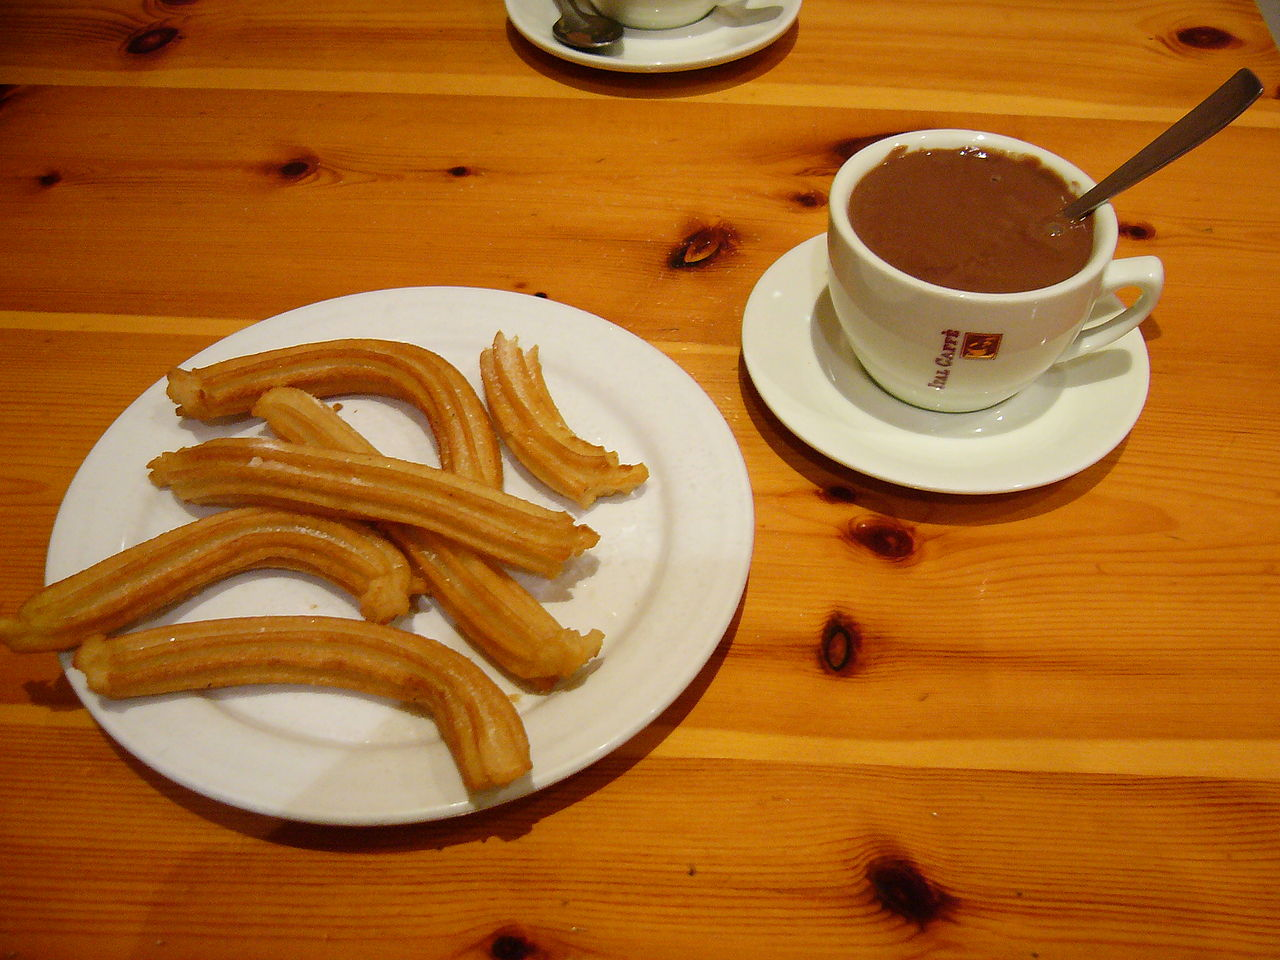 https://upload.wikimedia.org/wikipedia/commons/thumb/8/85/Chocolate_with_churros.jpg/1280px-Chocolate_with_churros.jpg